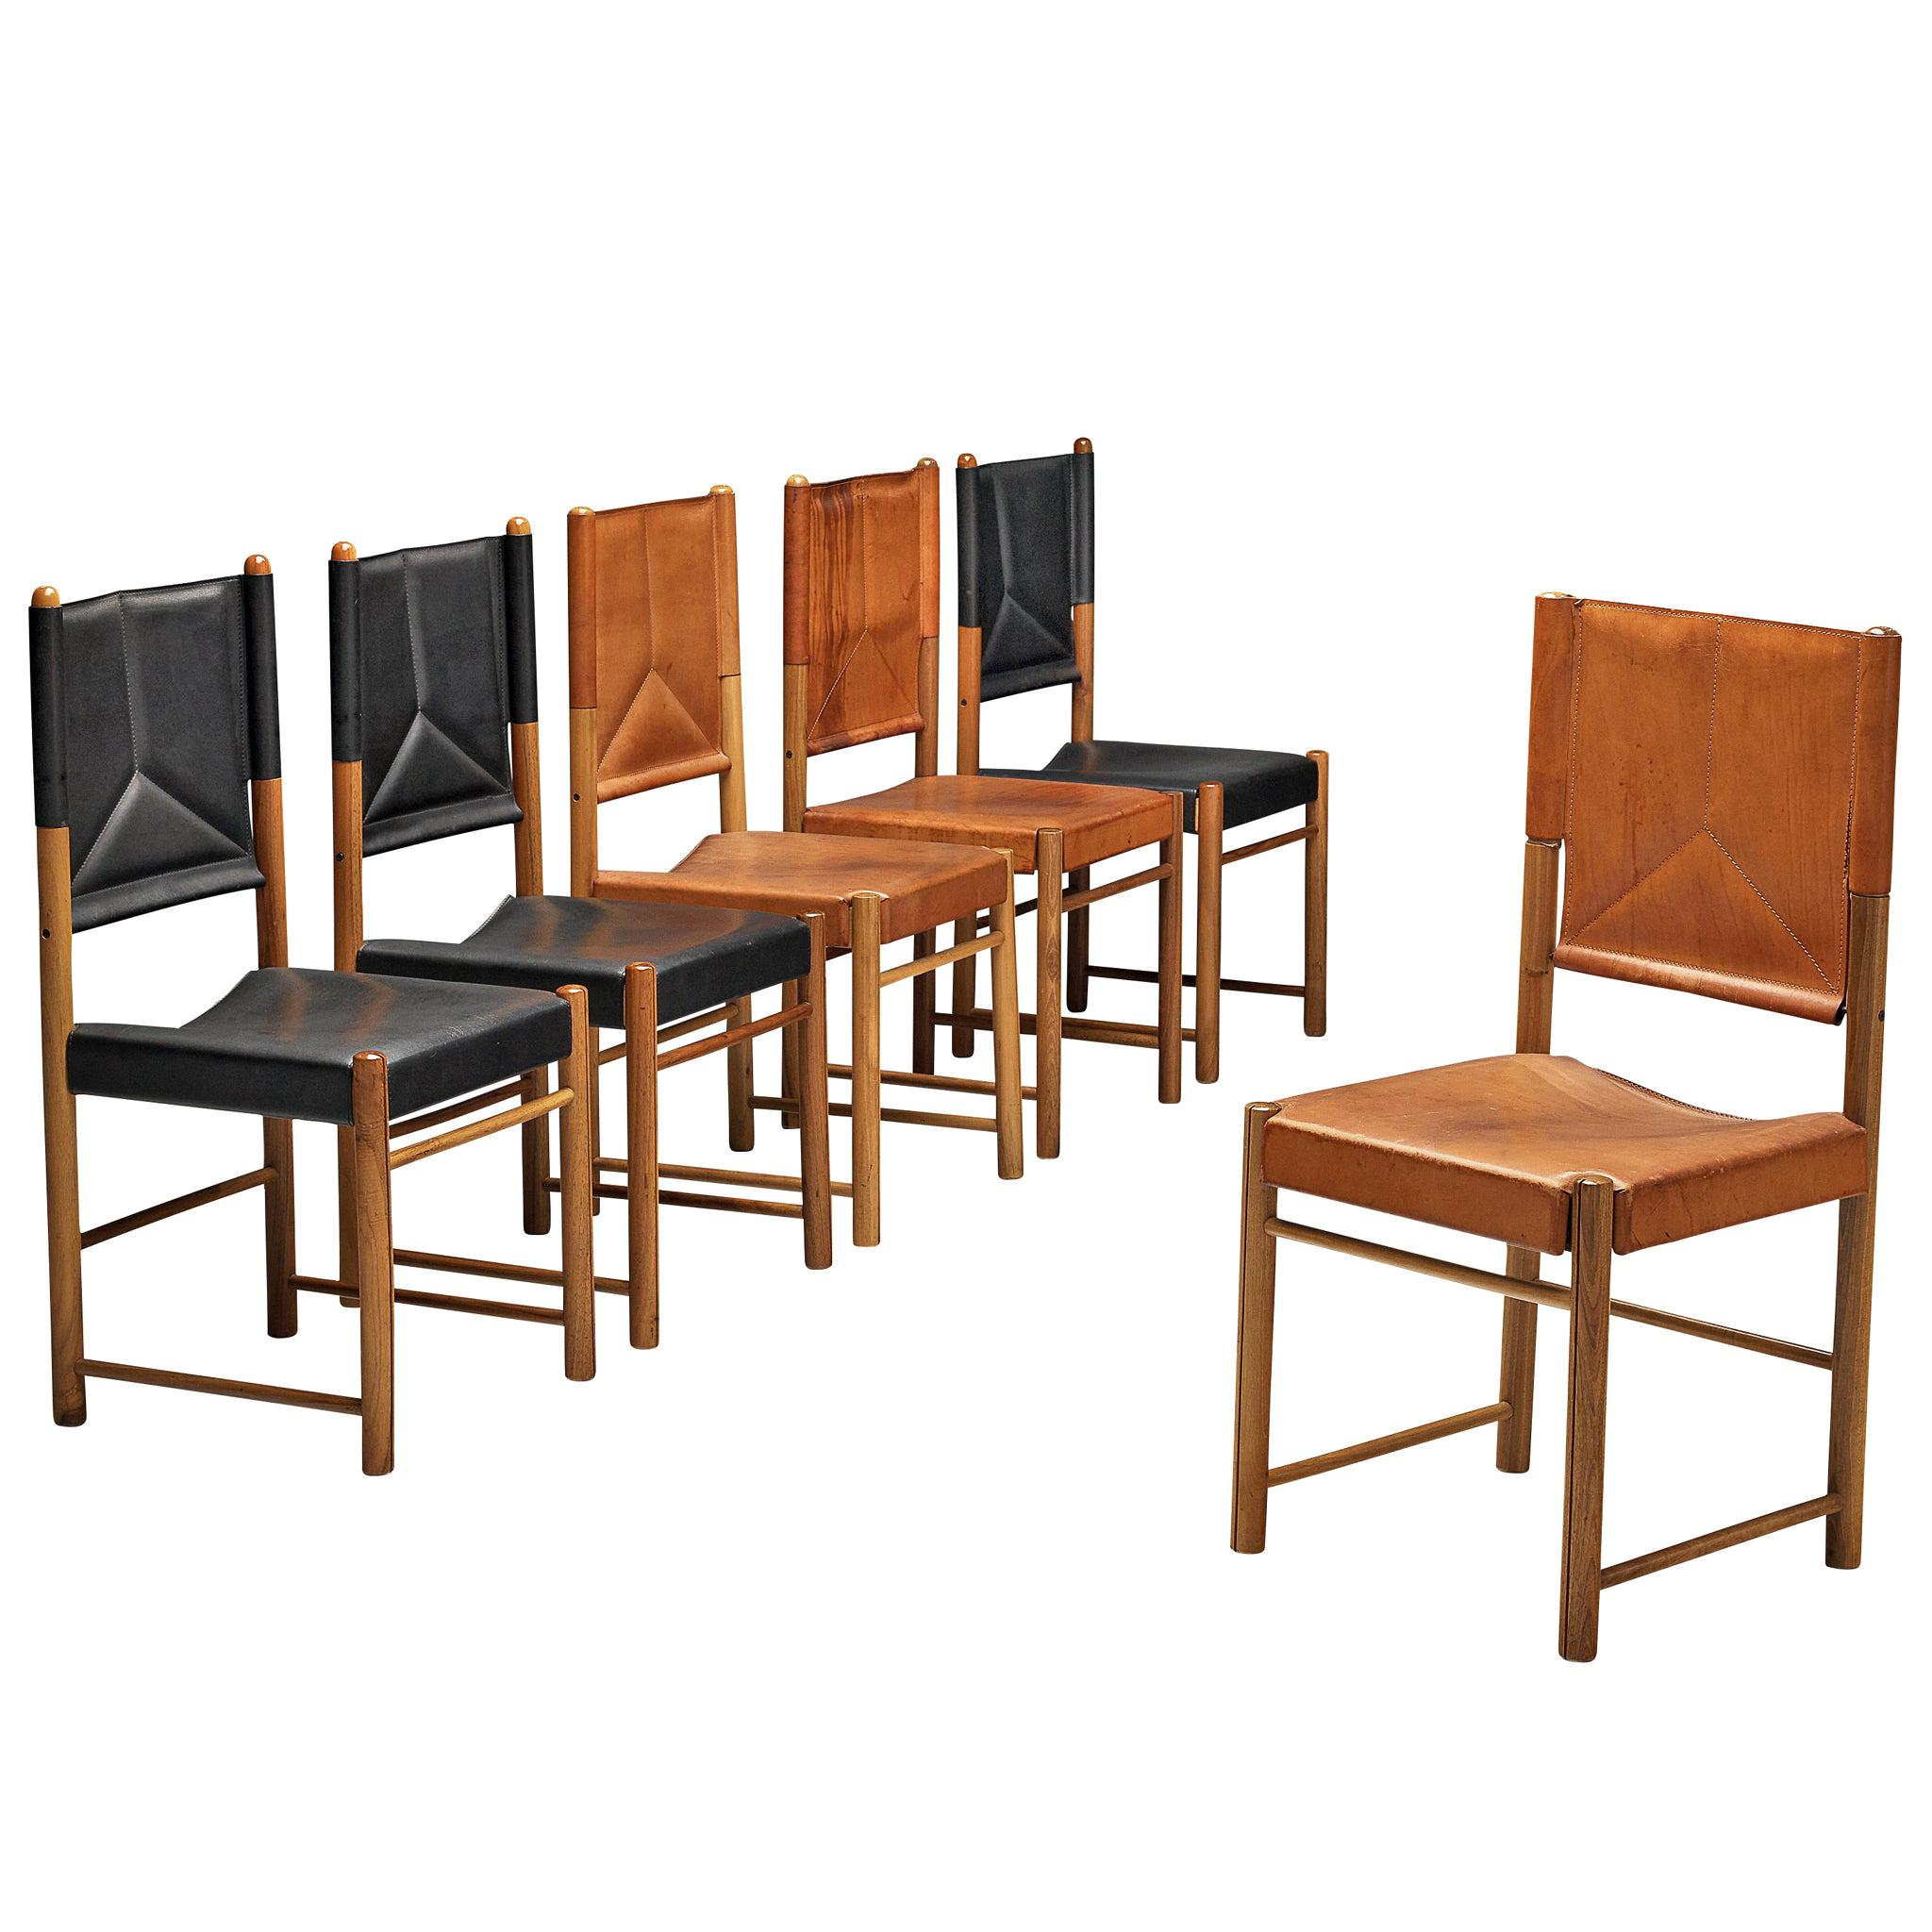 Bicolored Set of Six Italian Dining Chairs in Black and Cognac Leather